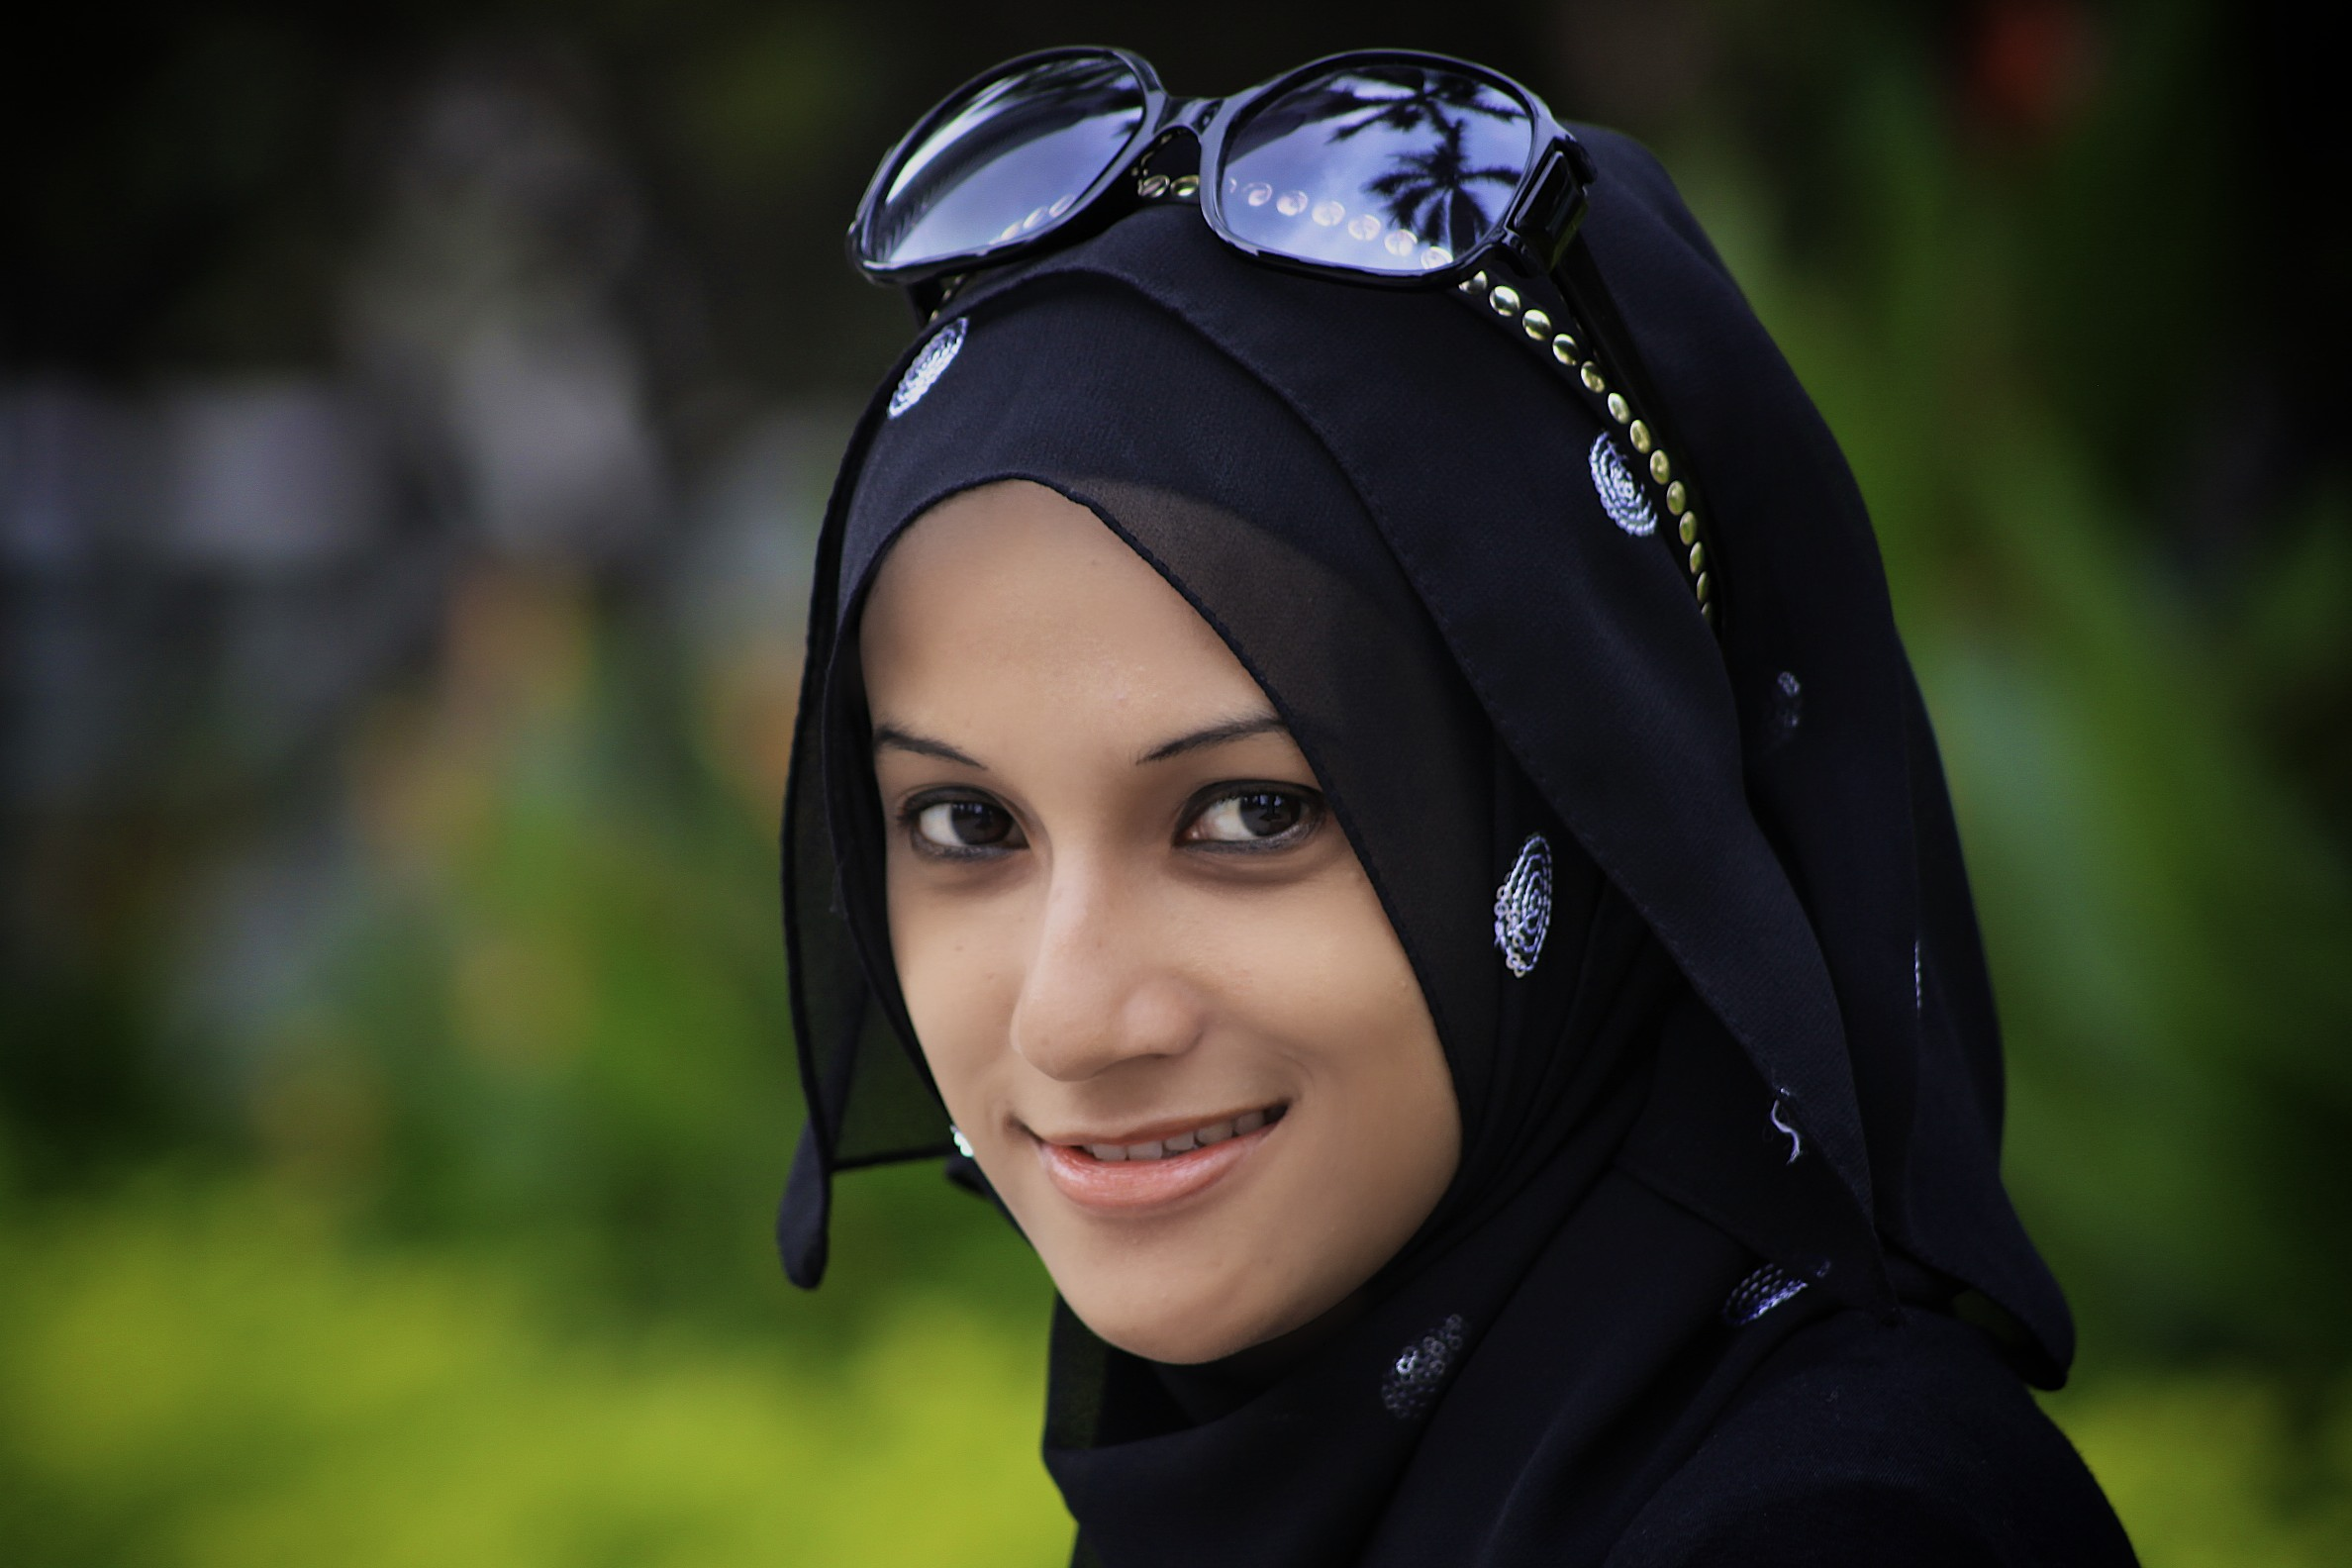 Women In Islam Pointers For The Western Mind